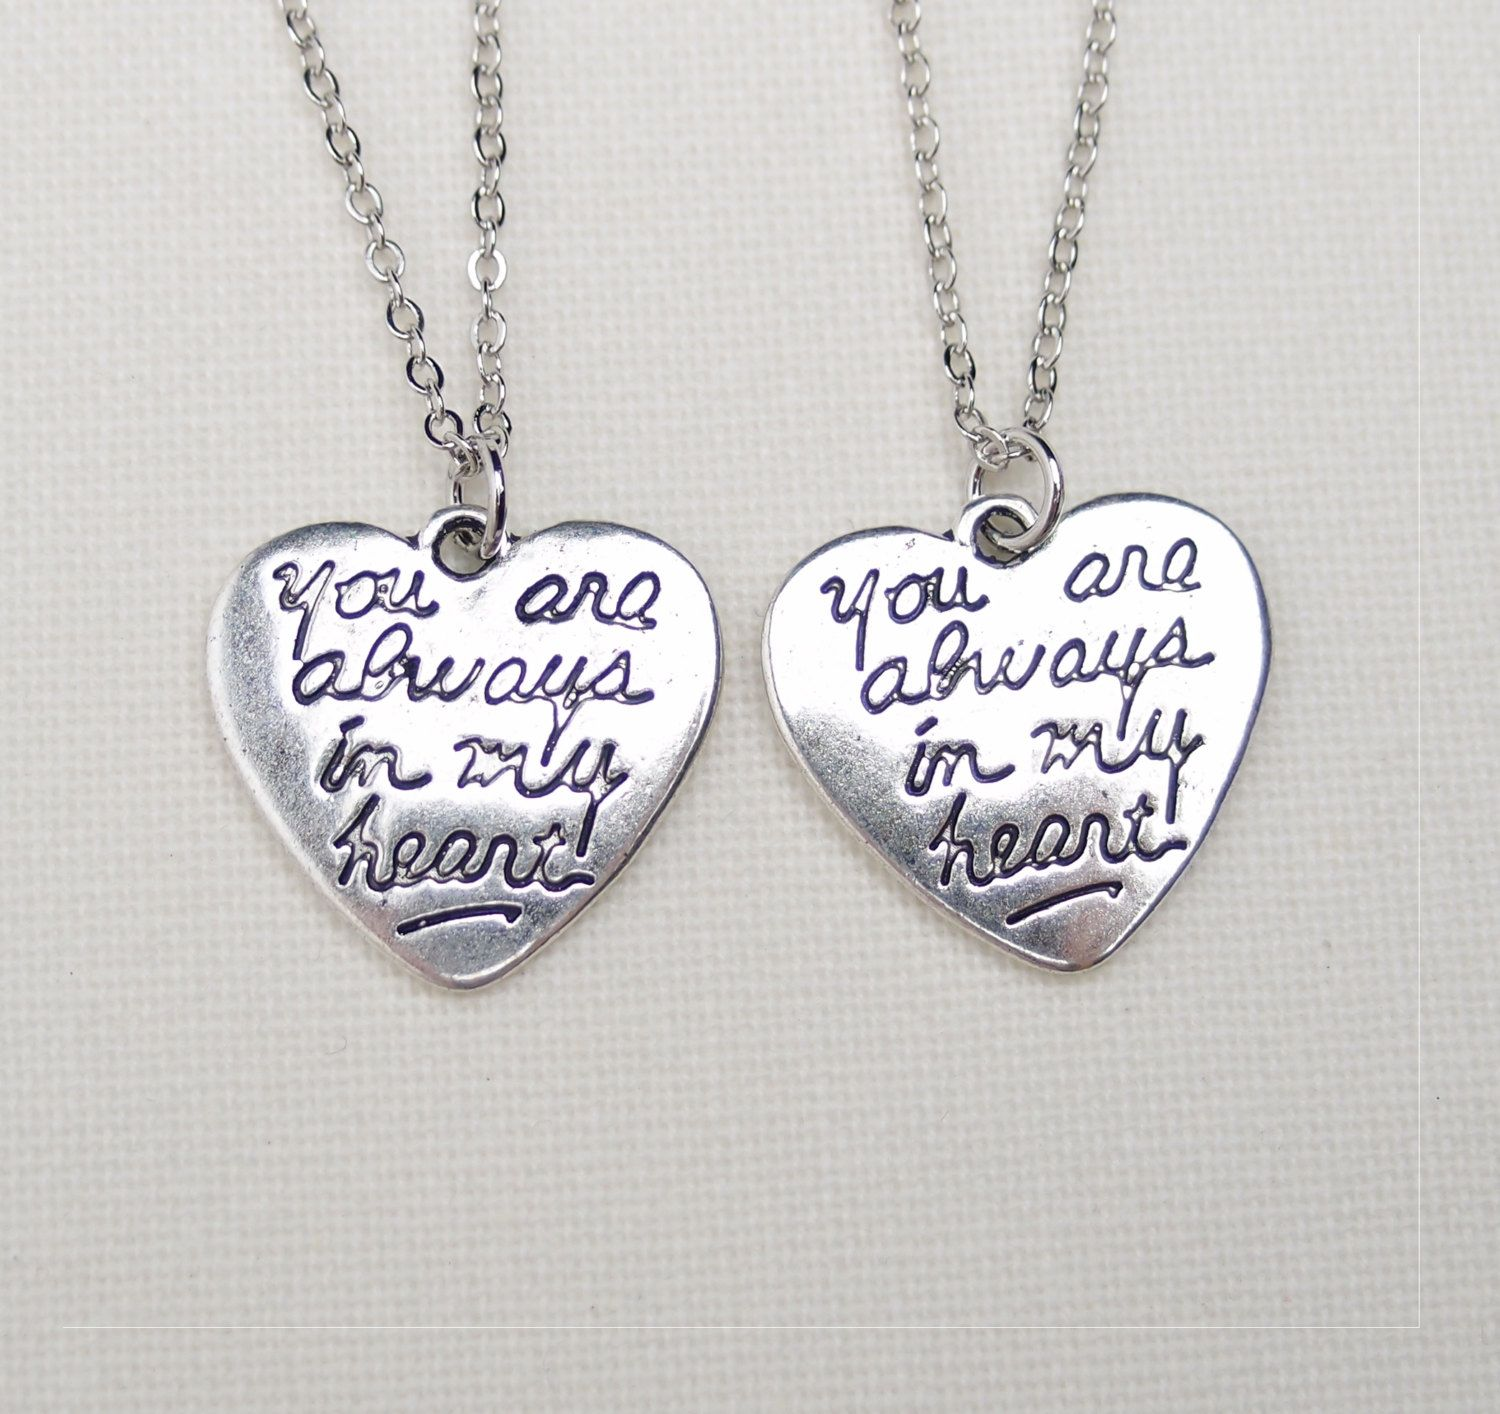 2 best friend lock and key necklaces, set of two, key to my heart ...